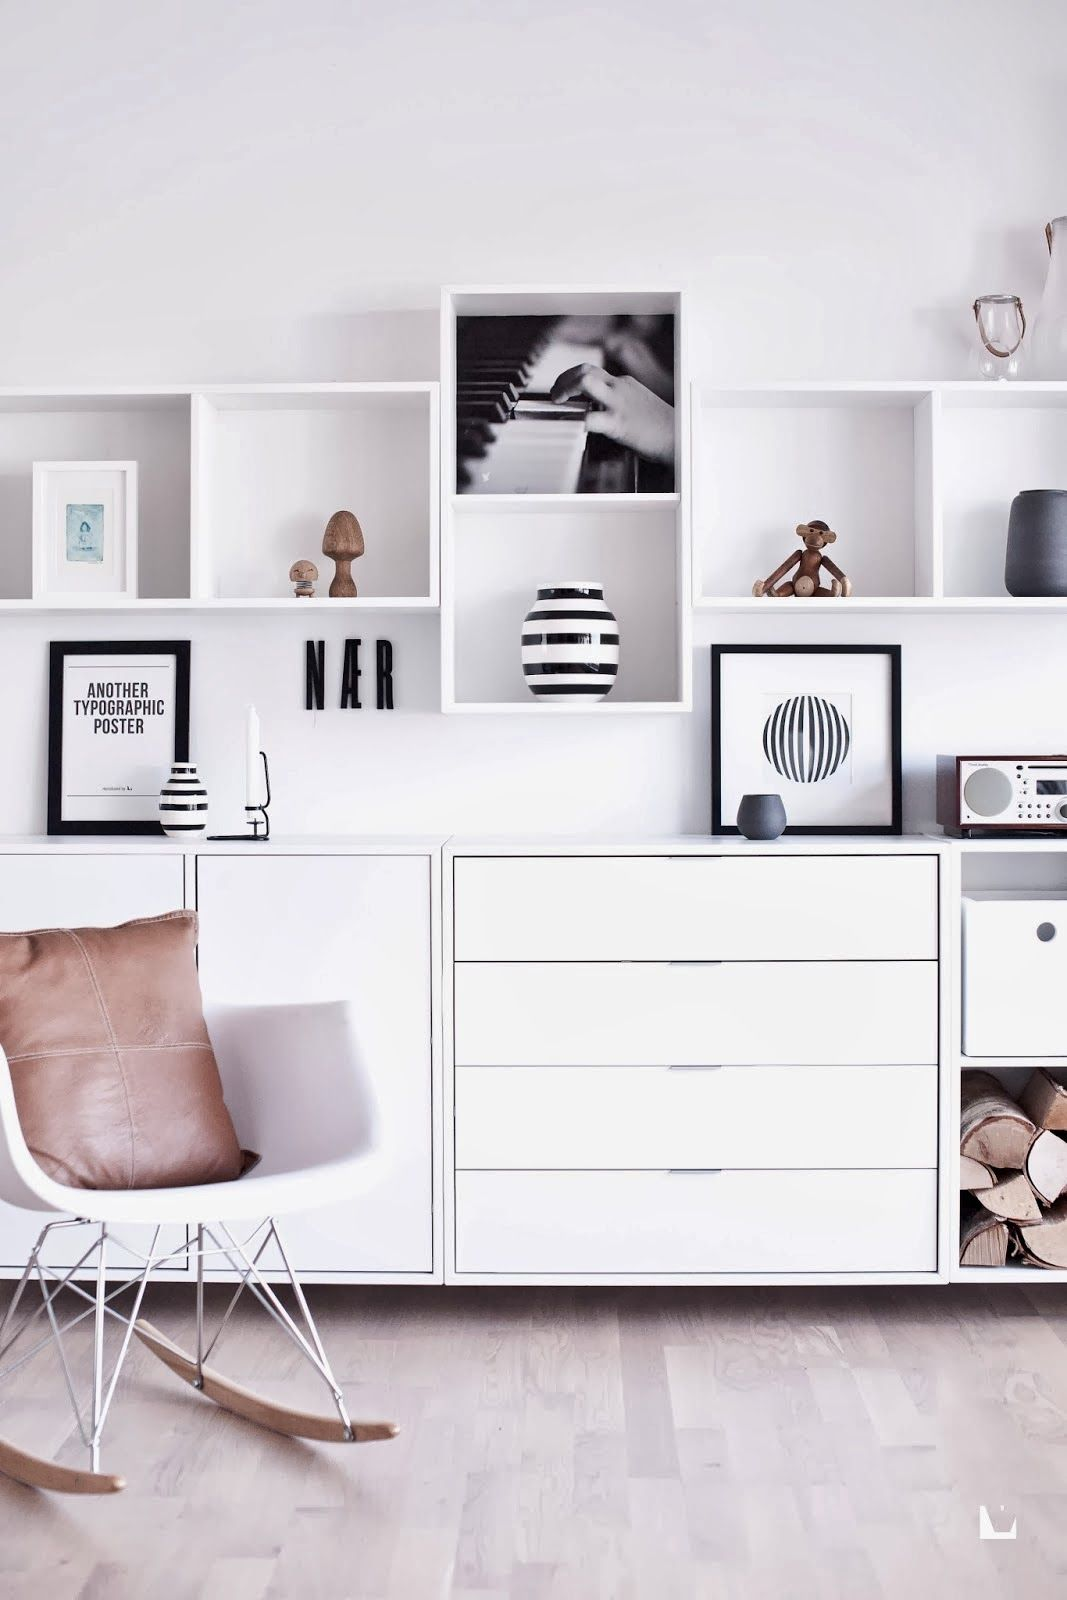 More wicked decor ideas here - http://dropdeadgorgeousdaily.com/2014 ...